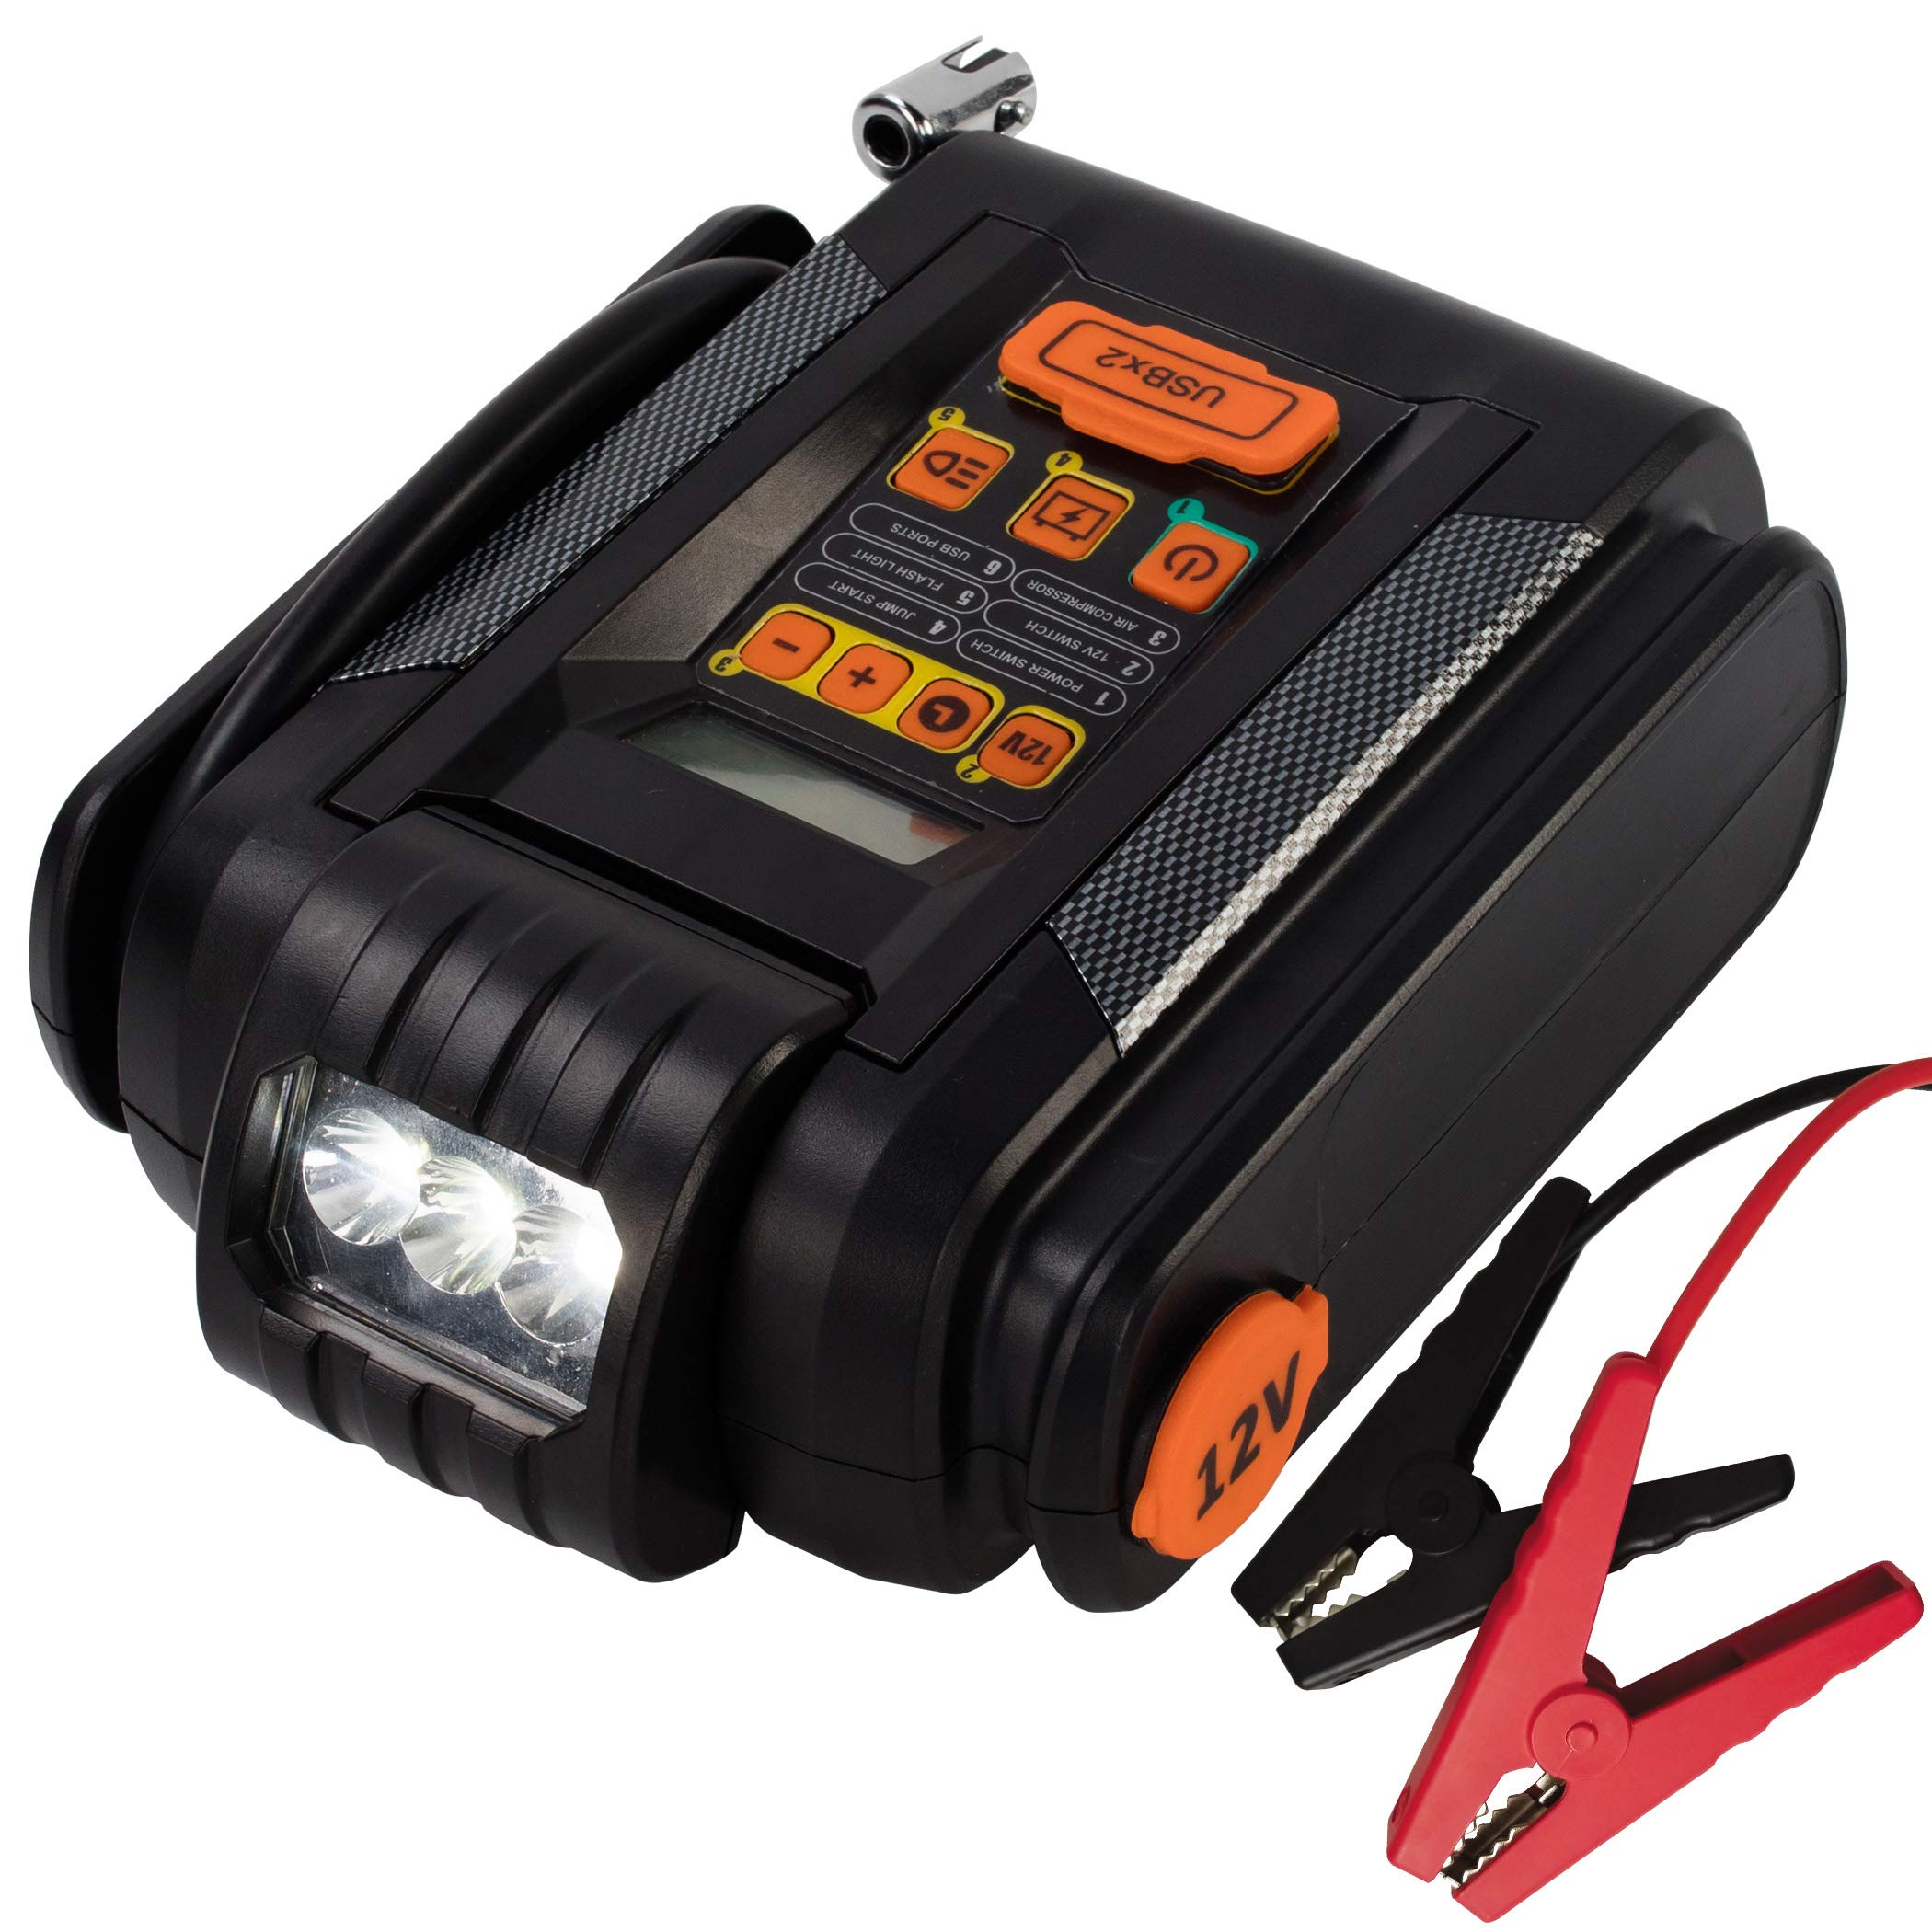 CARTMAN Lithium Jump Starter With Digital Preset Air Compressor, LCD Screen, 600A Peak 9000mAh, 2 X USB 2.4A